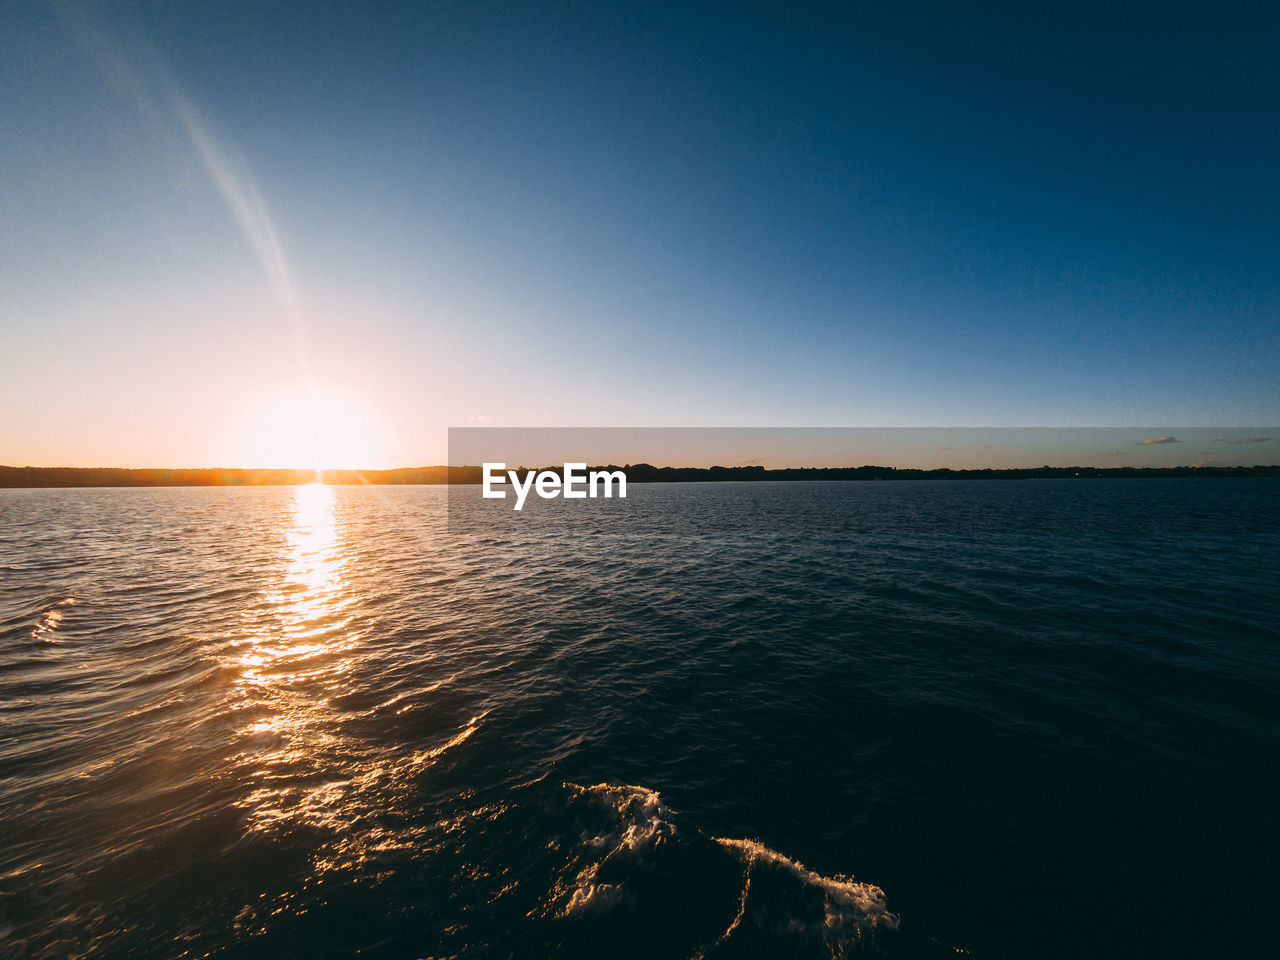 sky, water, beauty in nature, sea, scenics - nature, tranquility, tranquil scene, sunset, nature, sunlight, idyllic, no people, sun, waterfront, horizon, non-urban scene, copy space, clear sky, outdoors, horizon over water